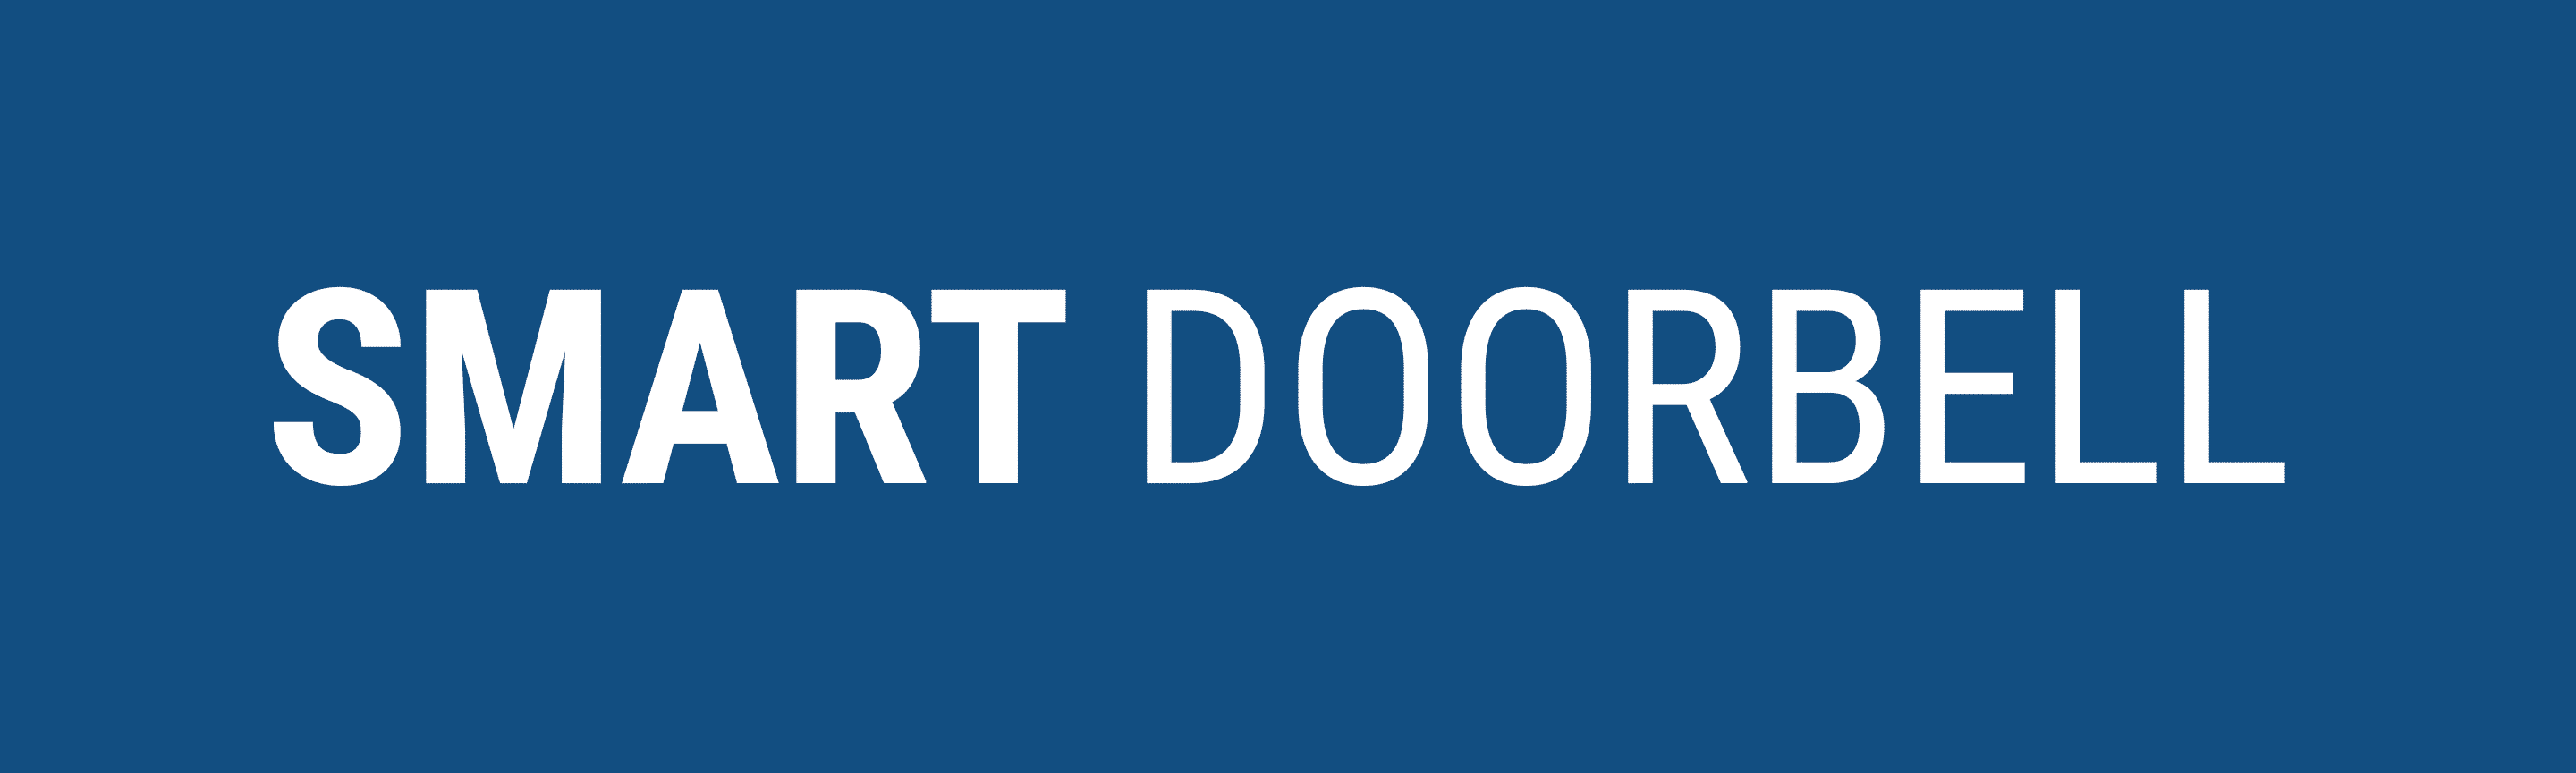 Smart Doorbell brand logo. Mobile application development and IoT development by SingleMind.